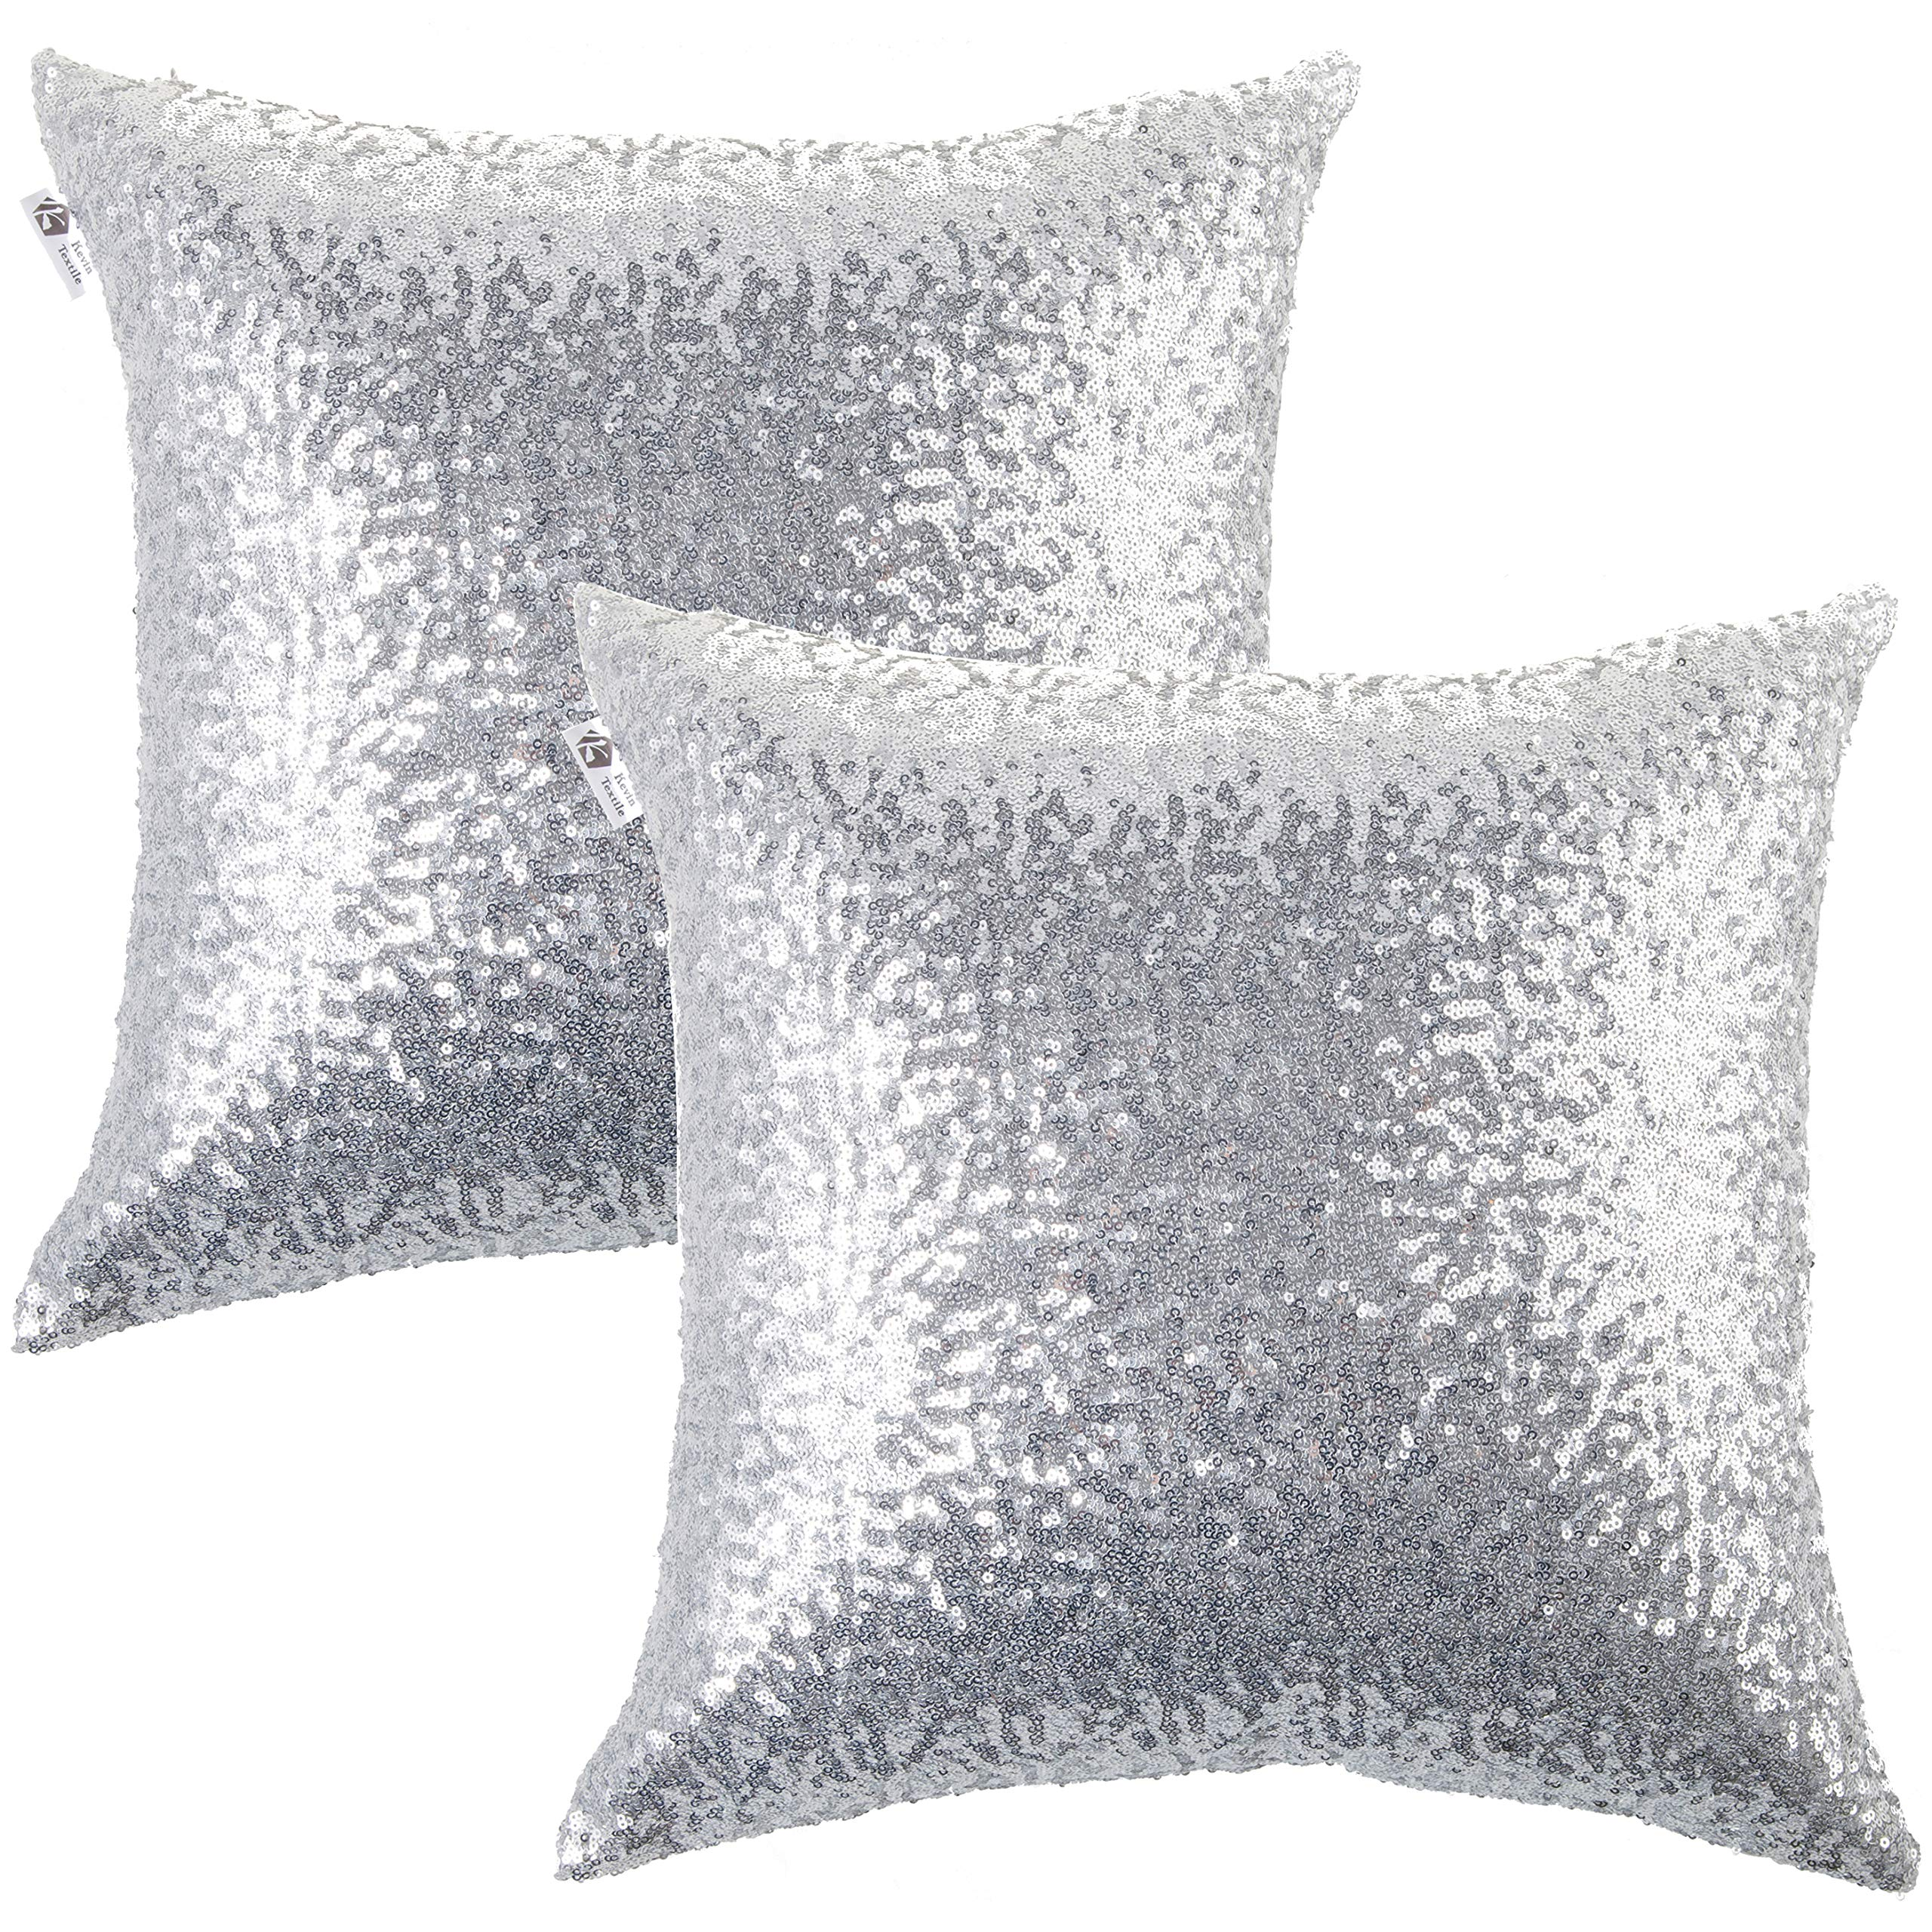 Kevin Textile Decorative Glitzy Sequin & Comfy Satin Solid Throw Pillow Cover Sham 18 Inch Square Pillow Case, Hidden Zipper Design, (2 Packs,Silver) by Kevin Textile